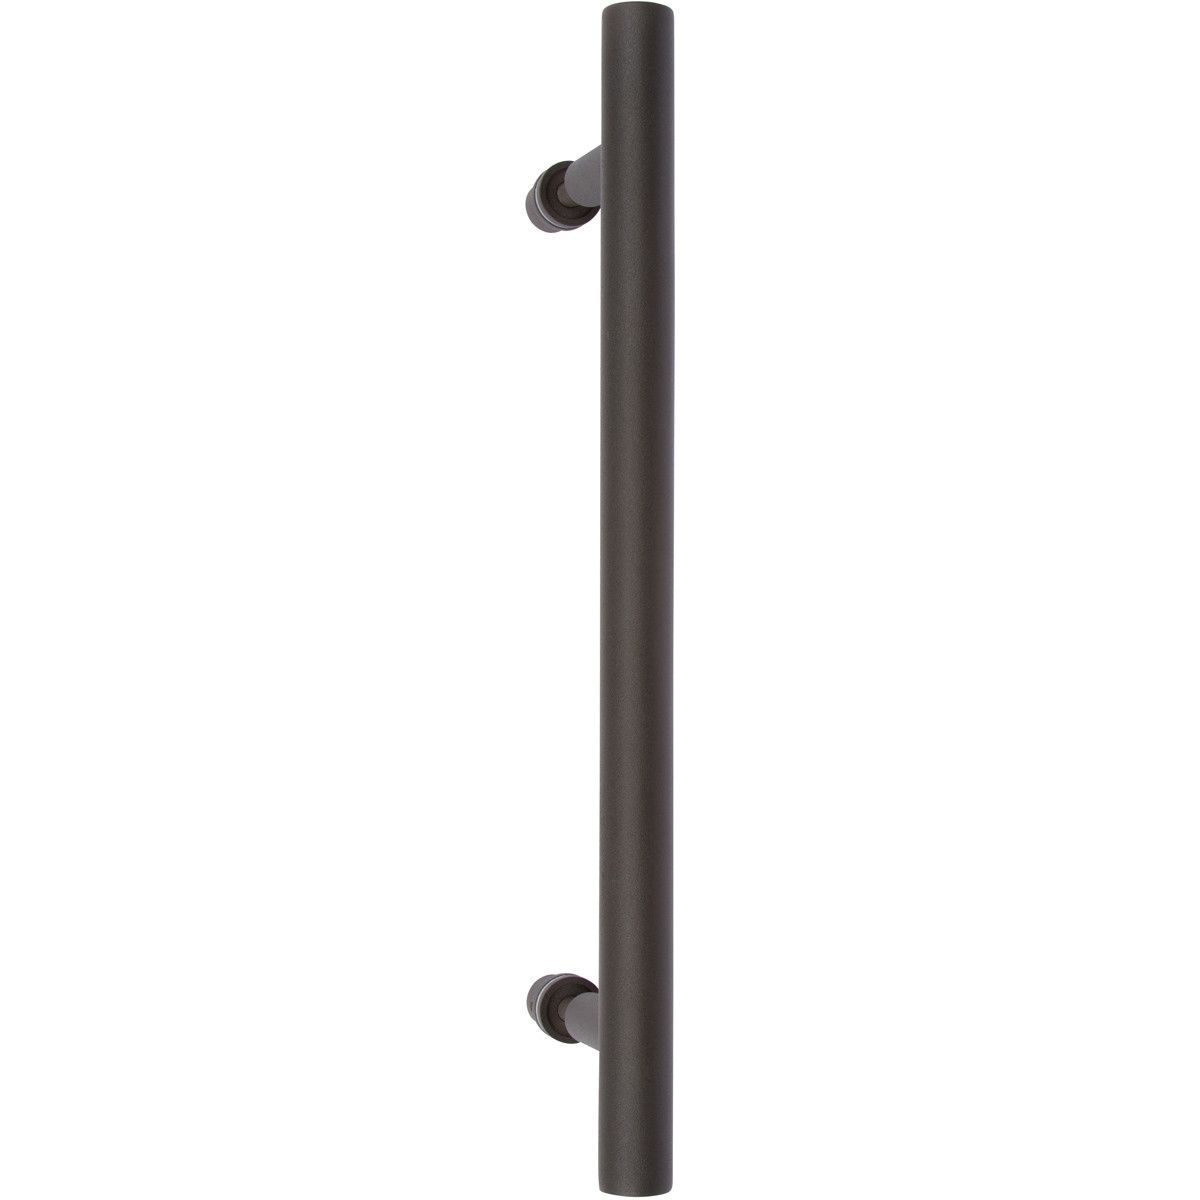 Delaney Hardware Barn Door Round Pull Handle Finish: B